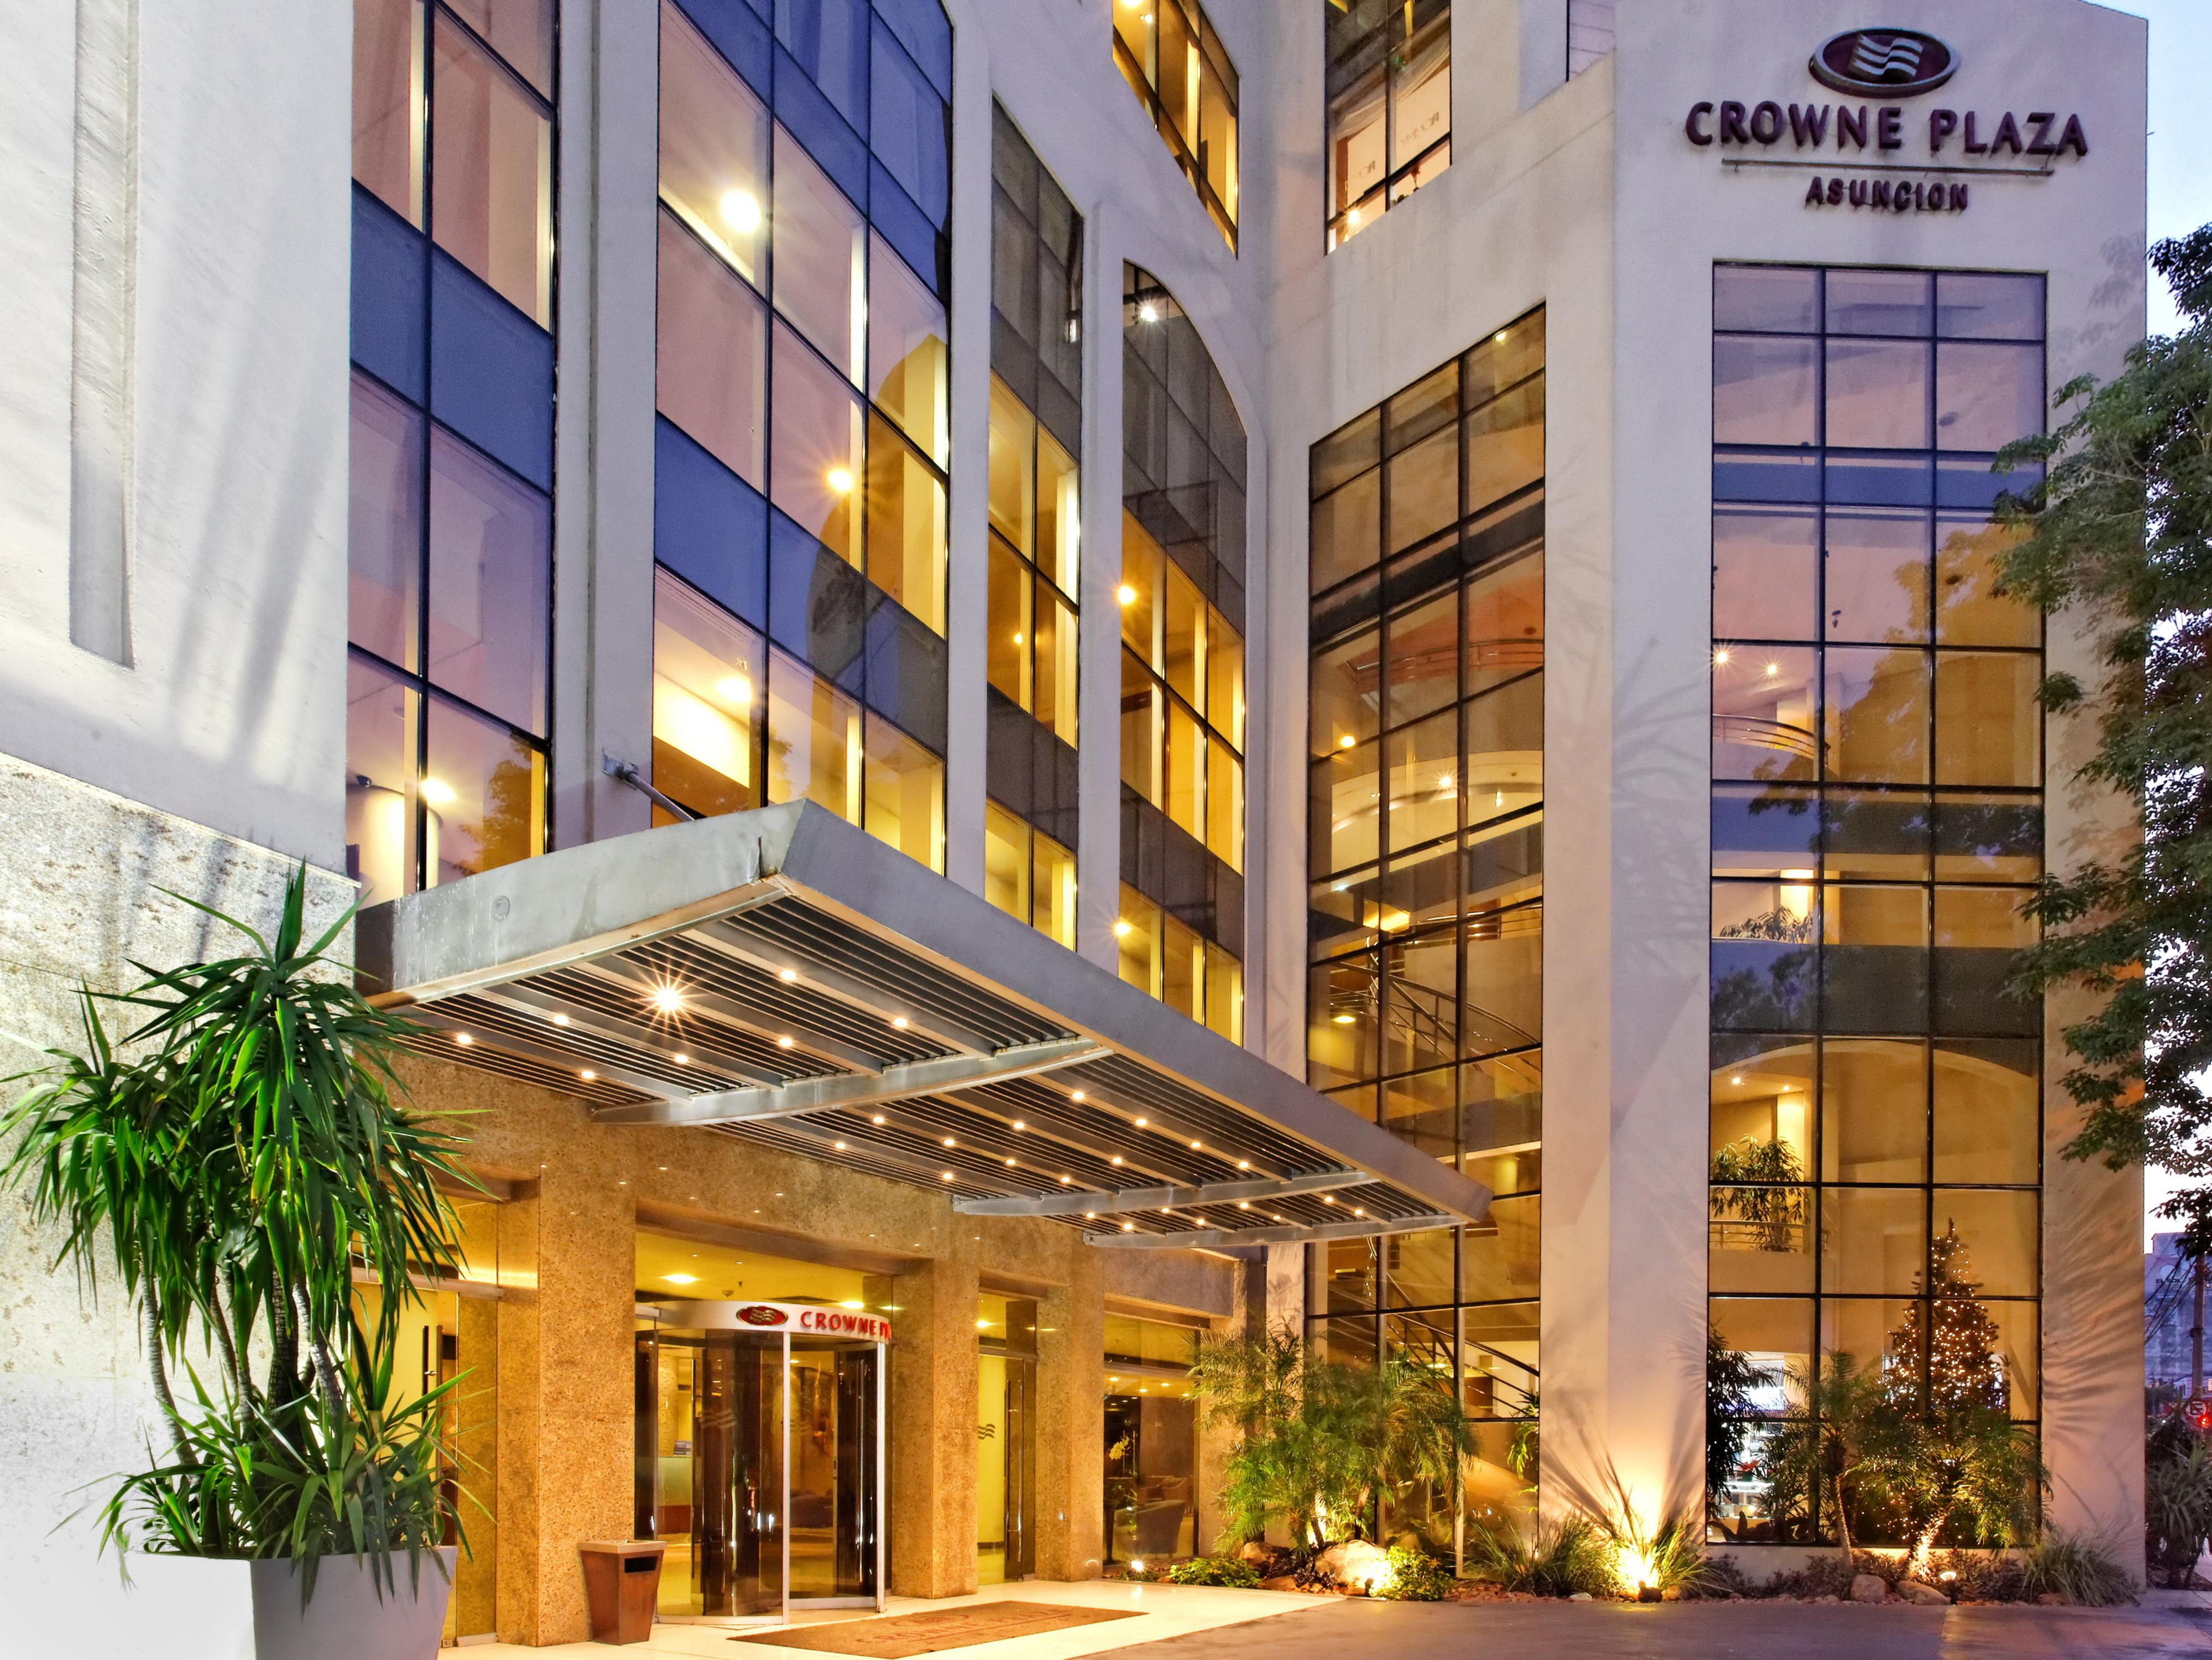 Luxury Hotels In Asuncion Paraguay